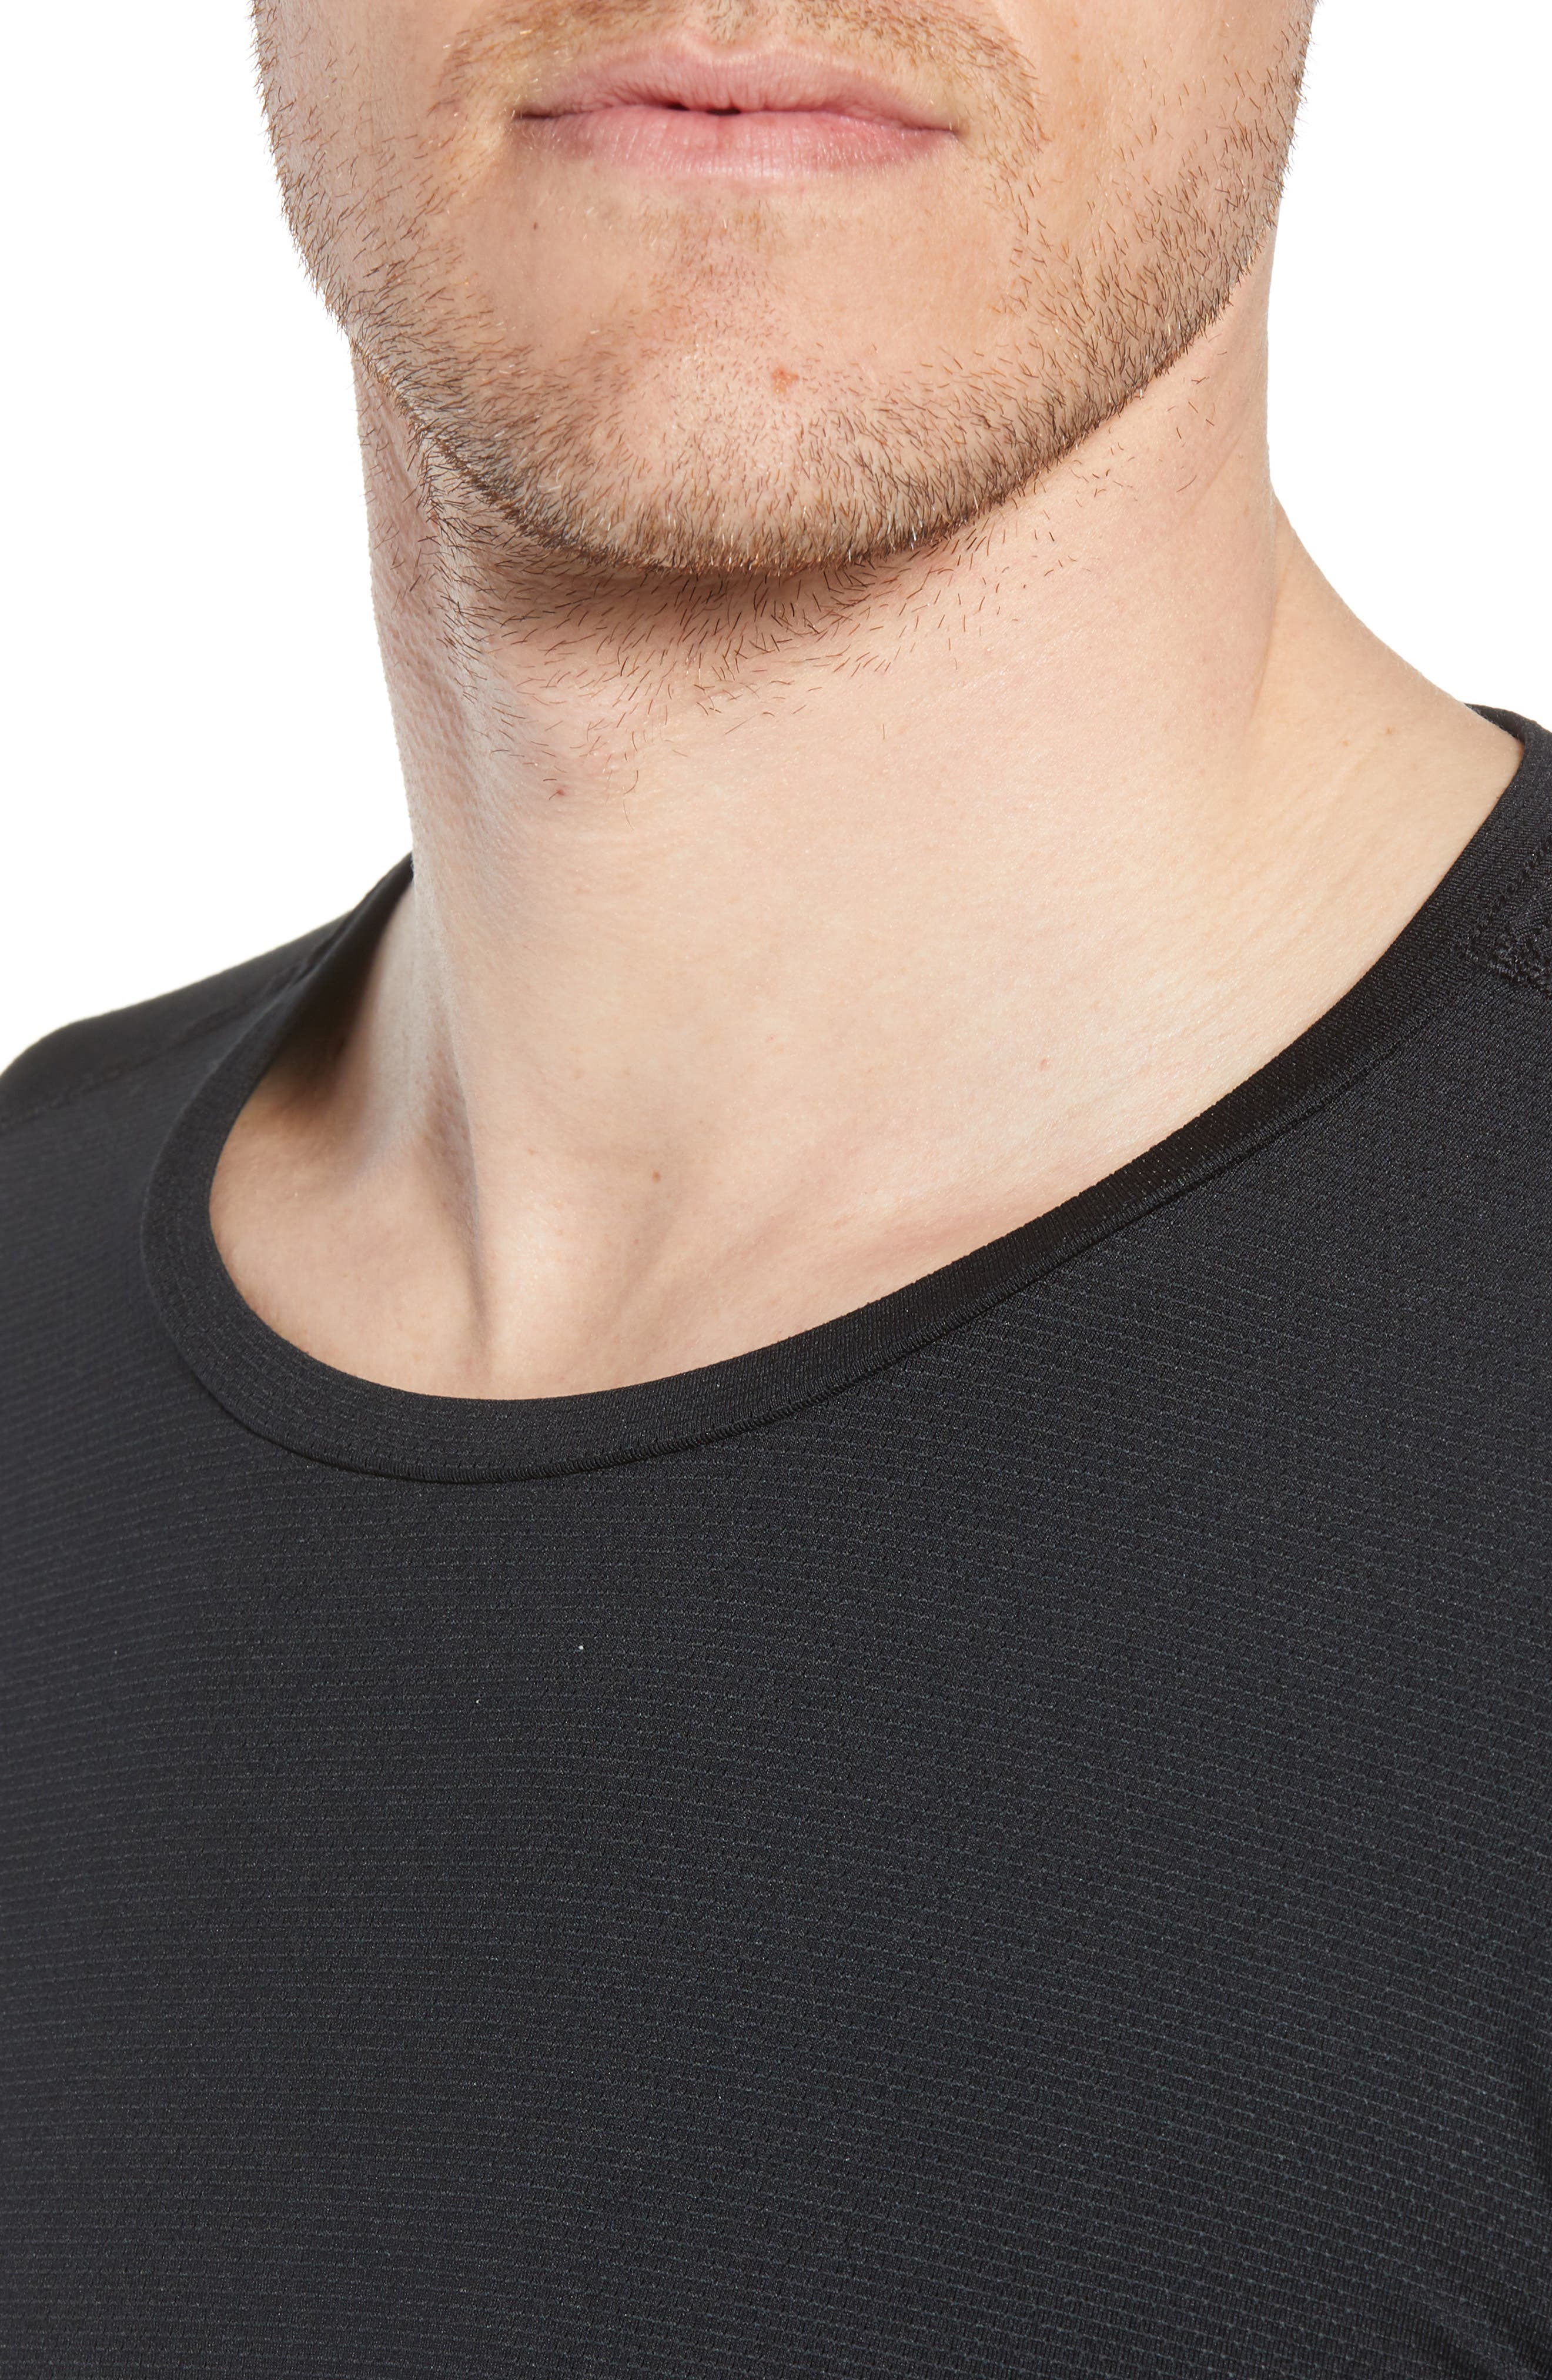 Pro Utility Fitted Training Top,                             Alternate thumbnail 4, color,                             BLACK/ BLACK